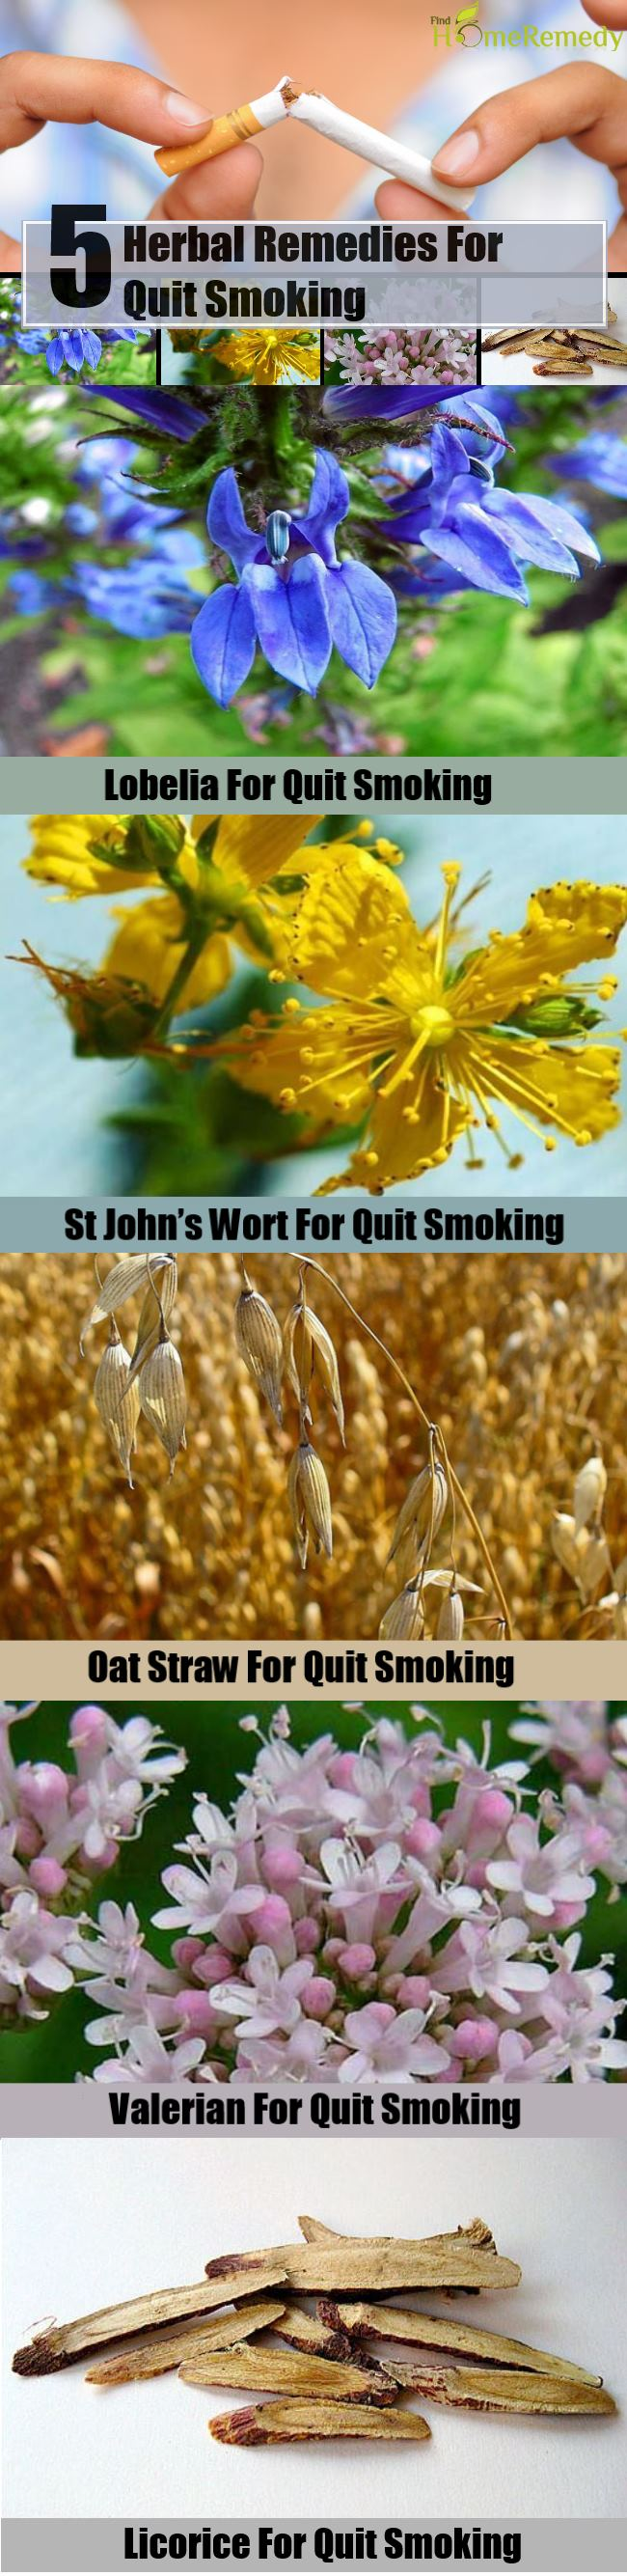 5 Herbal Remedies for Quit Smoking